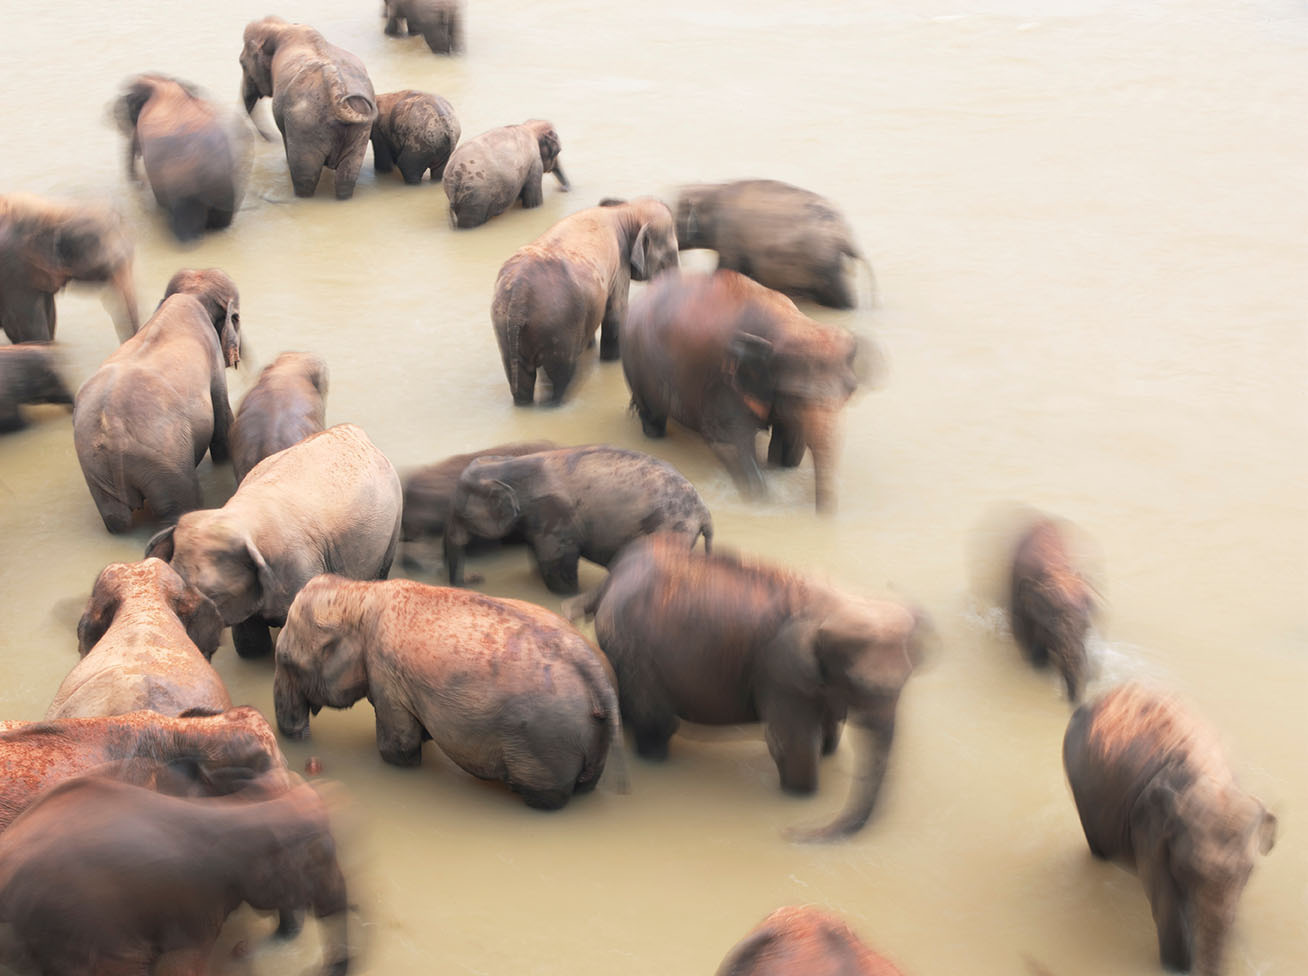 Elephant herd bathing in the river at the Pinnawela Elephant Orphanage, Kegalle, Sri Lanka